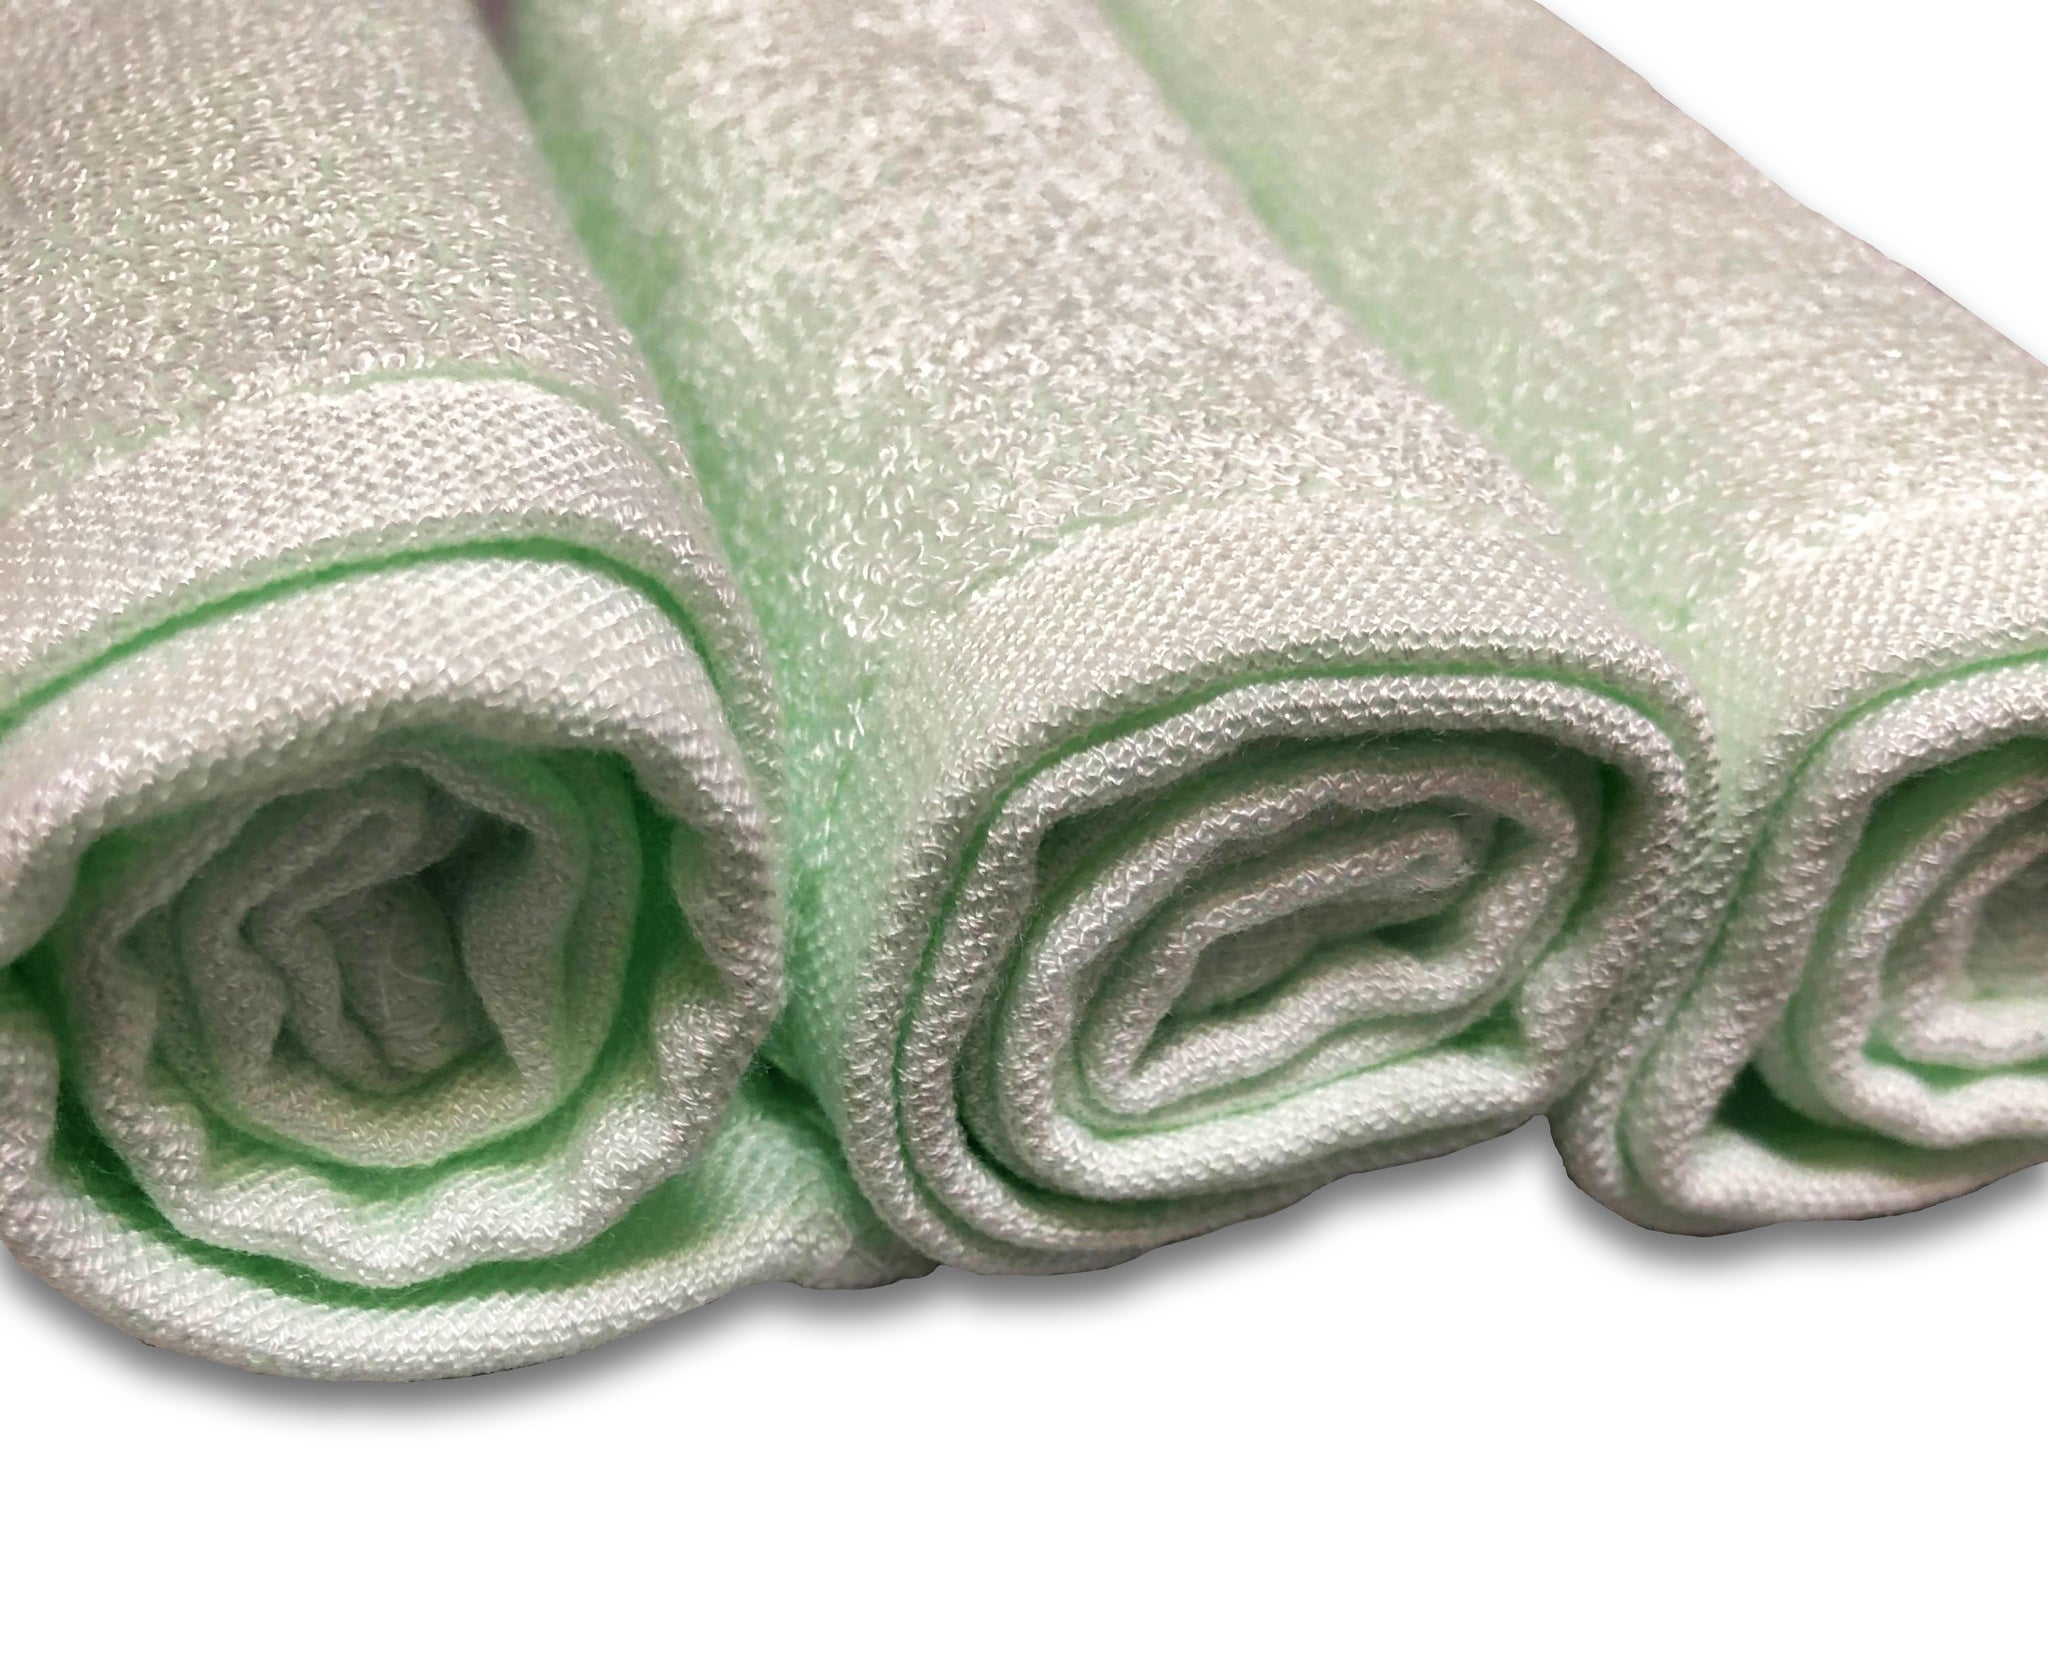 Set of three organic bamboo washcloths, colored green, with close up of fine and delicate texture.